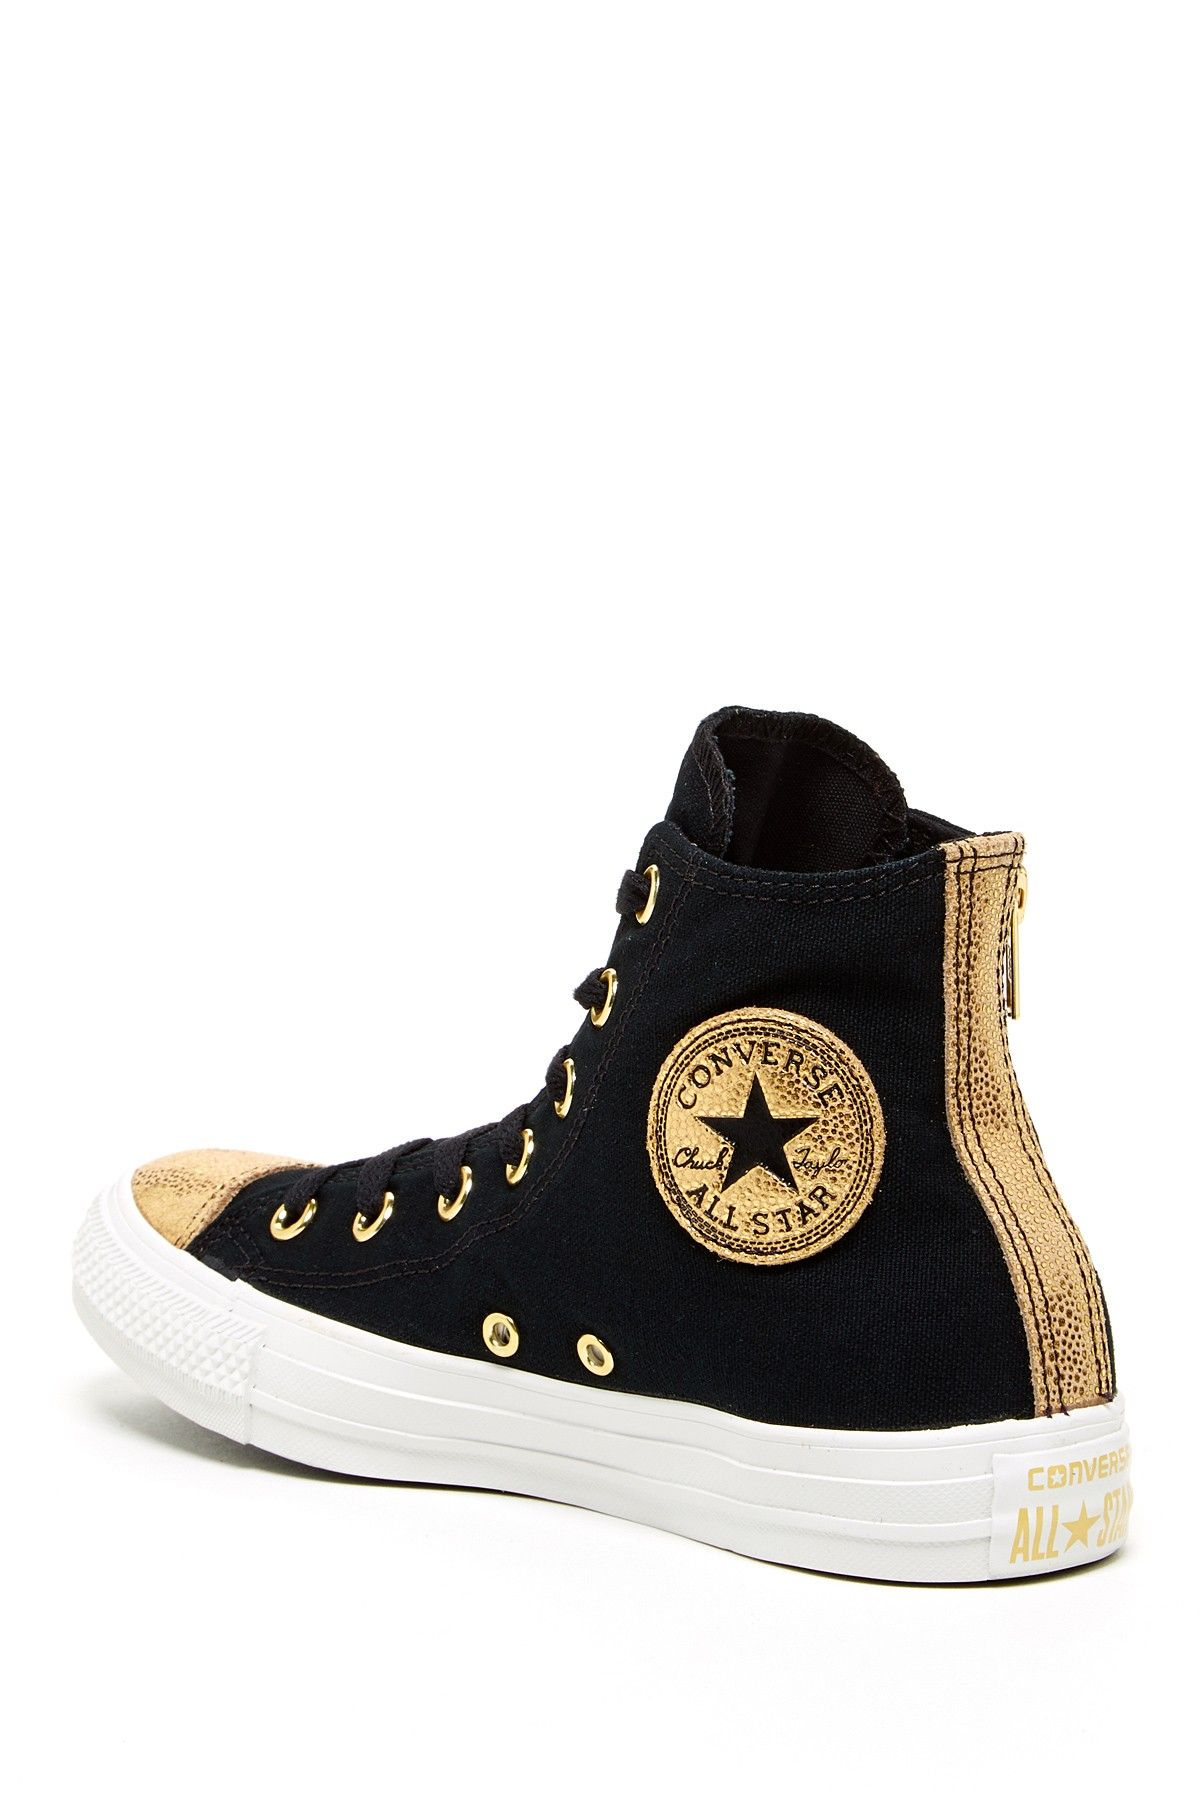 979e26c8c16e2f Chuck Taylor Side Zip High Top Sneaker by Converse on  nordstrom rack